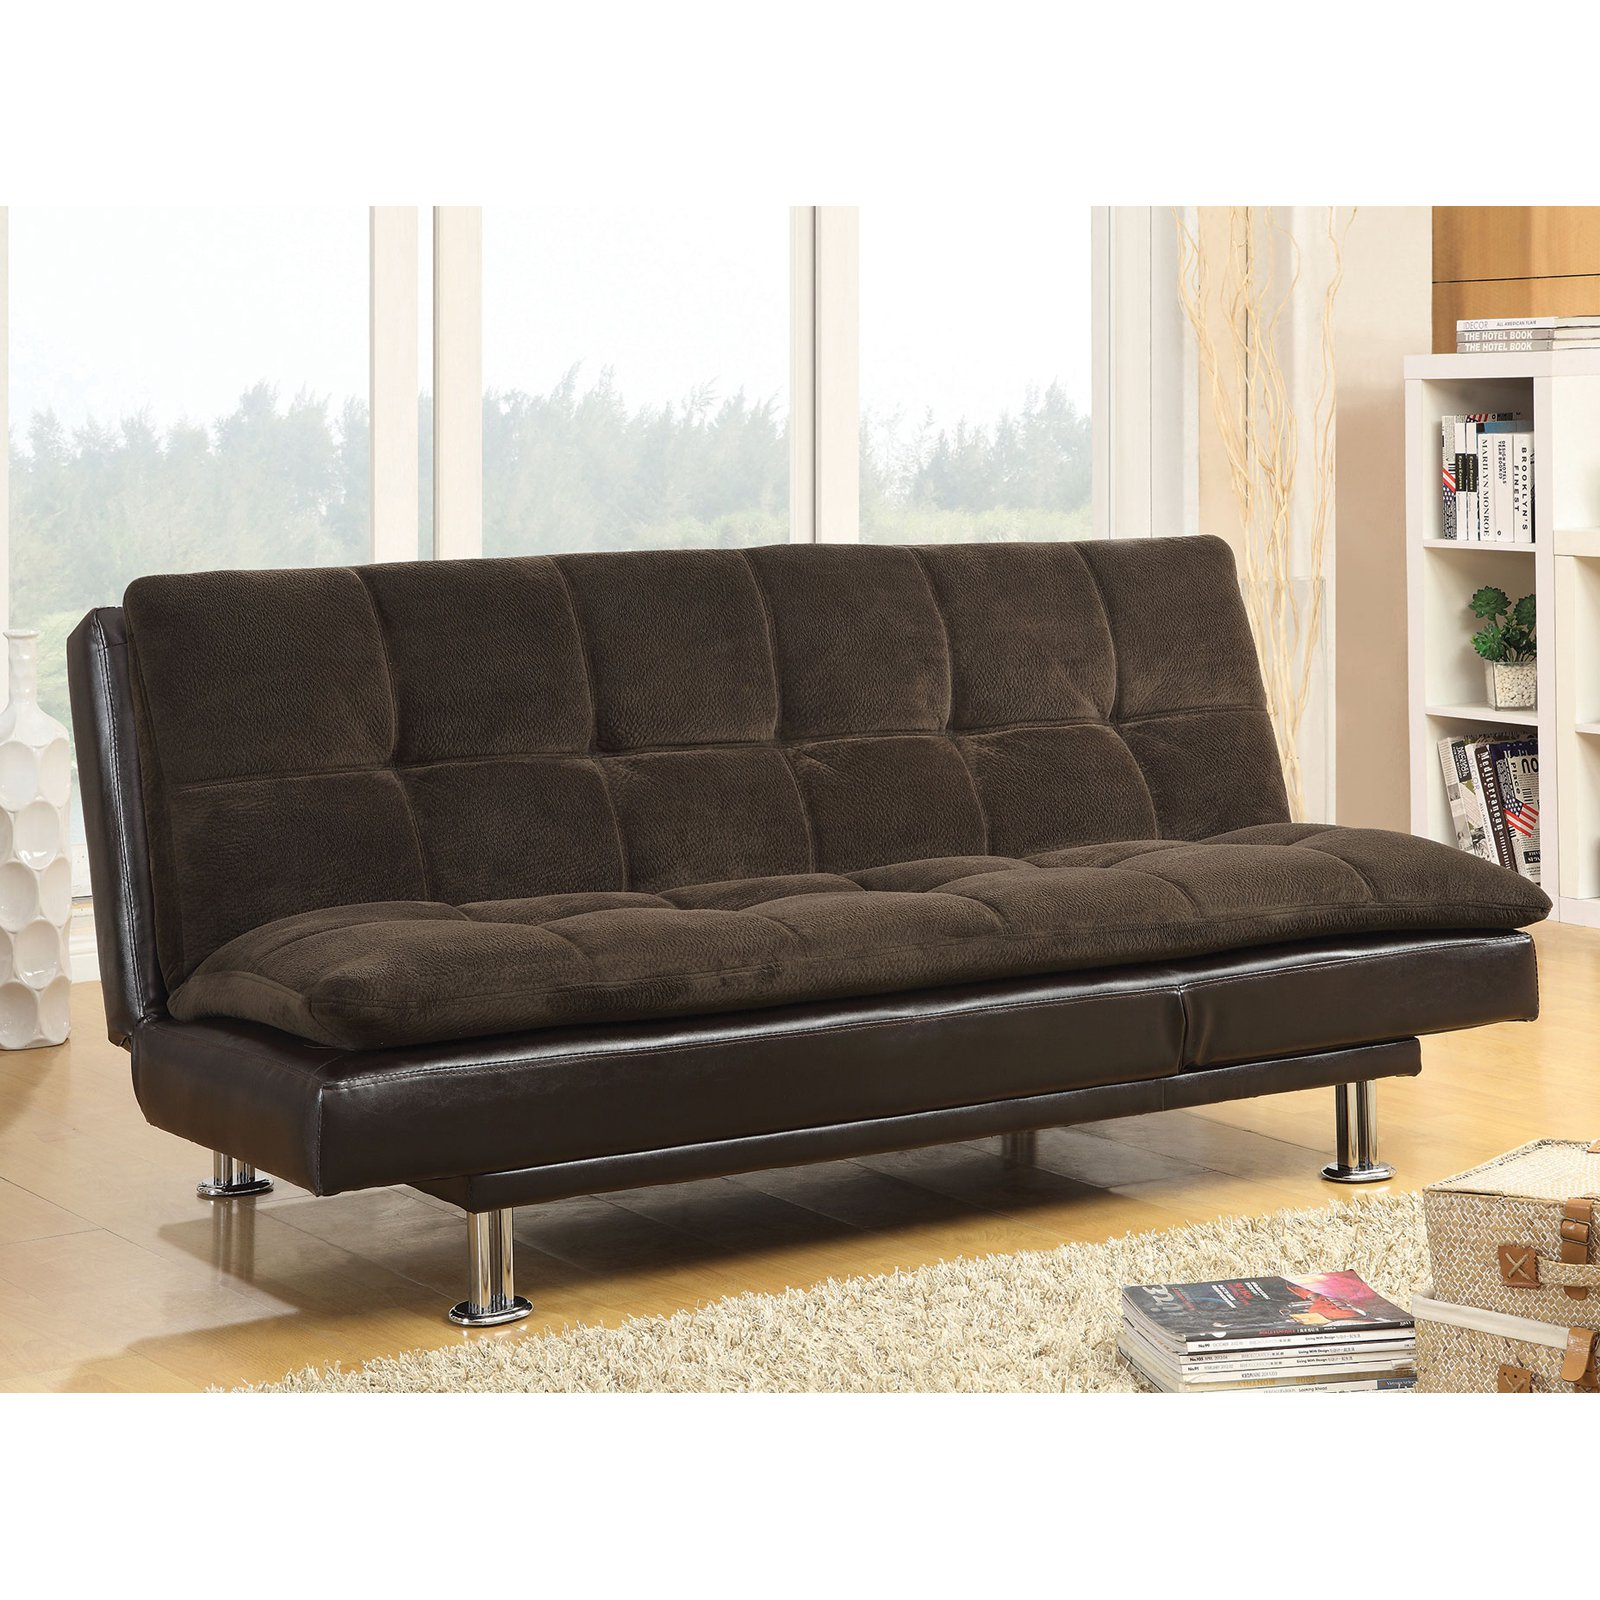 Millie Casual-Style Sofa Bed, Brown